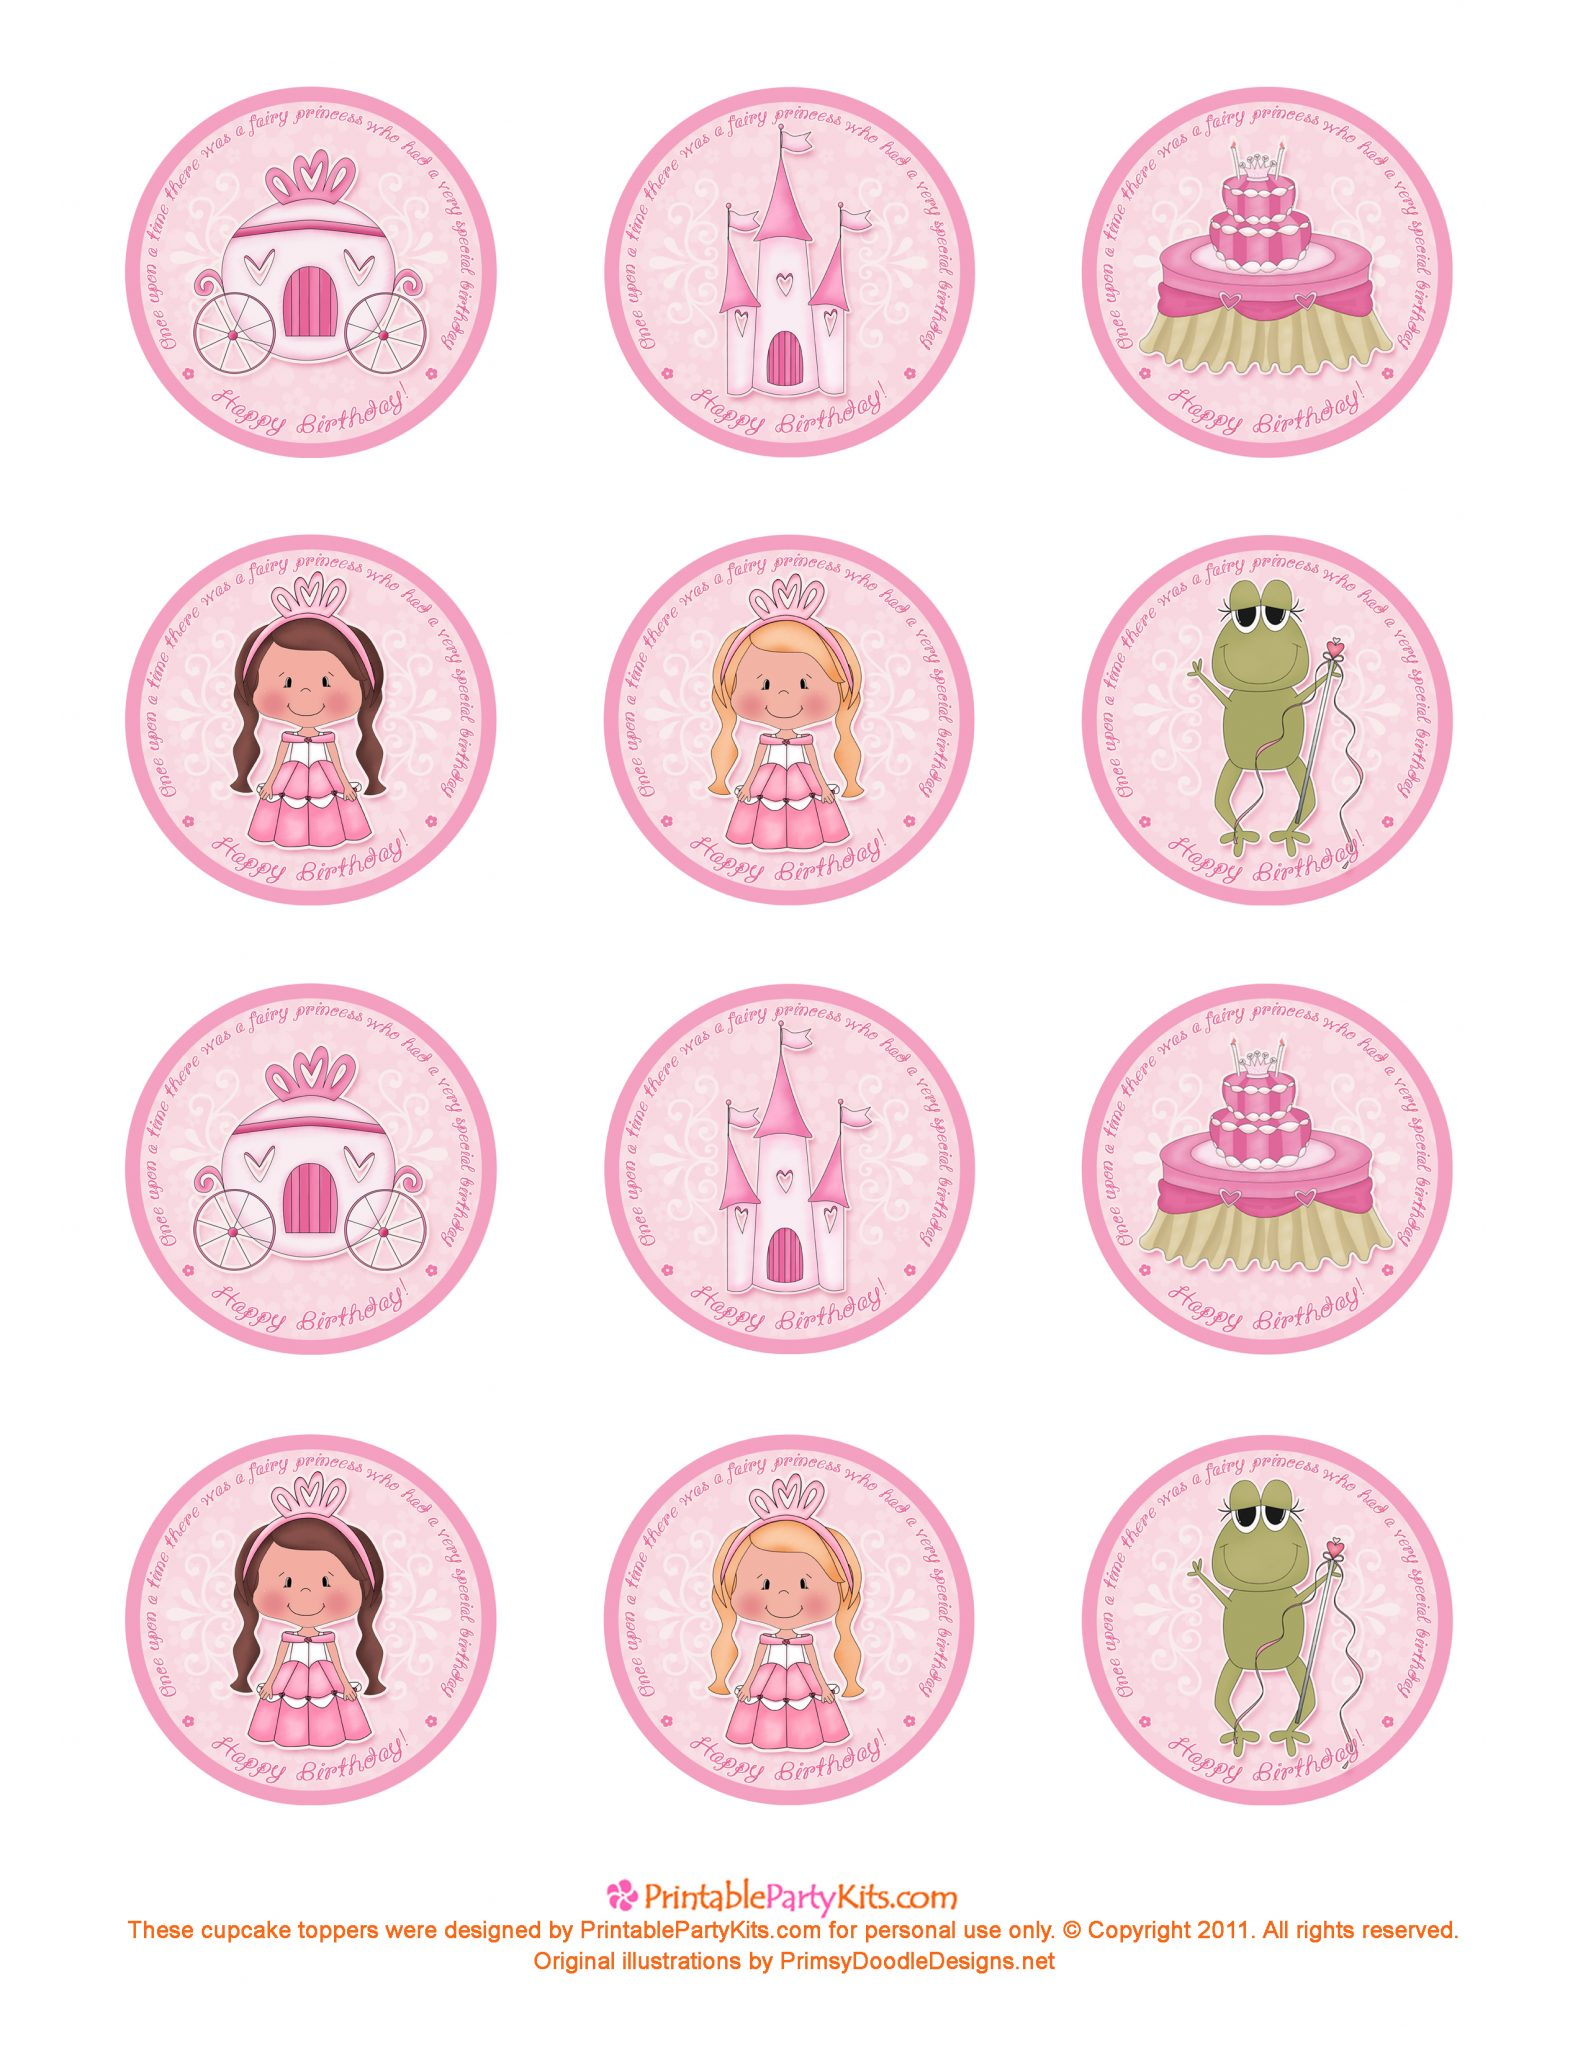 Cupcake Toppers : girls Printable Party Kits